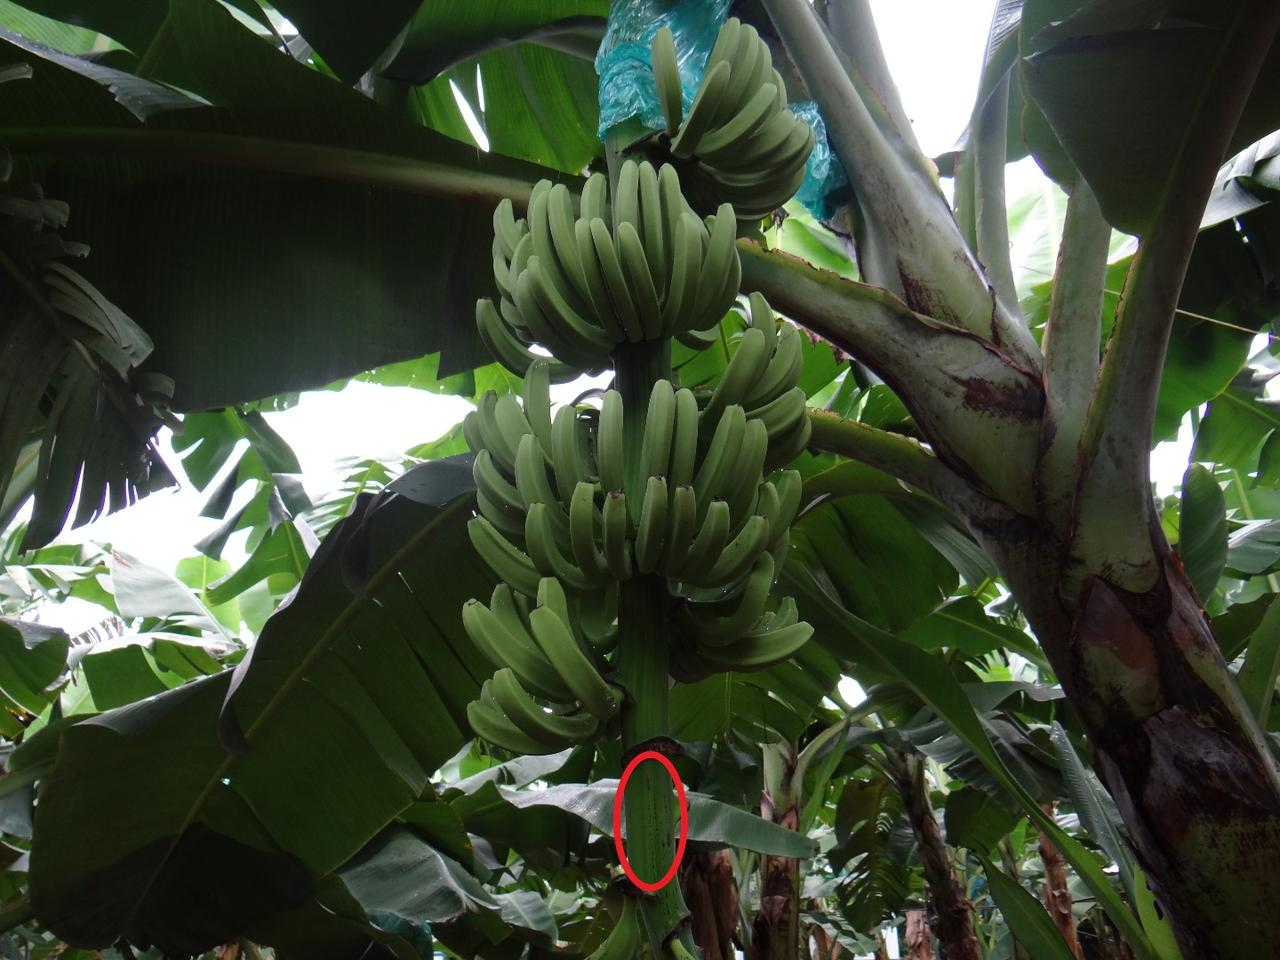 A banana rachis is circled in this photo